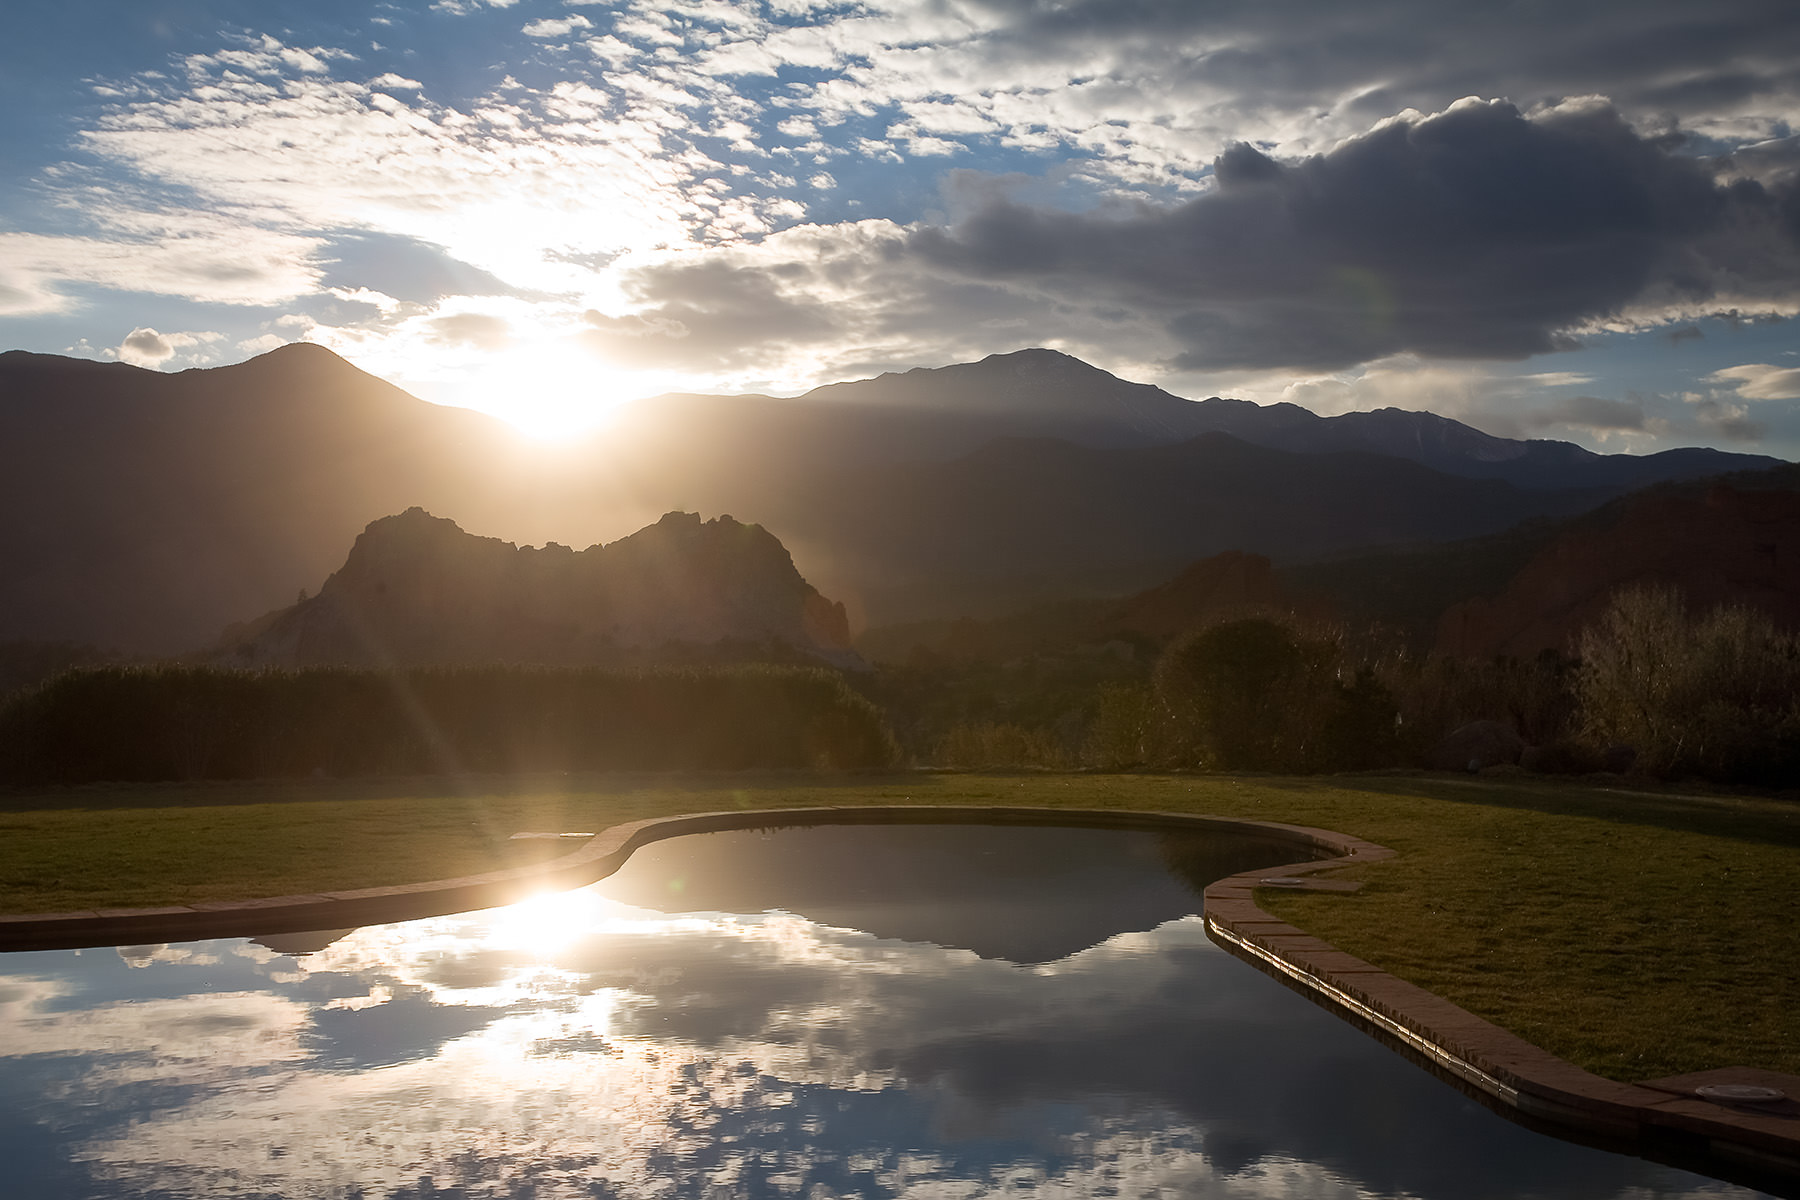 Sunset with blue sky and scattered clouds over the reflection pool at the Garden of the Gods Club and Resort with Garden of the Gods Park and Pikes Peak.